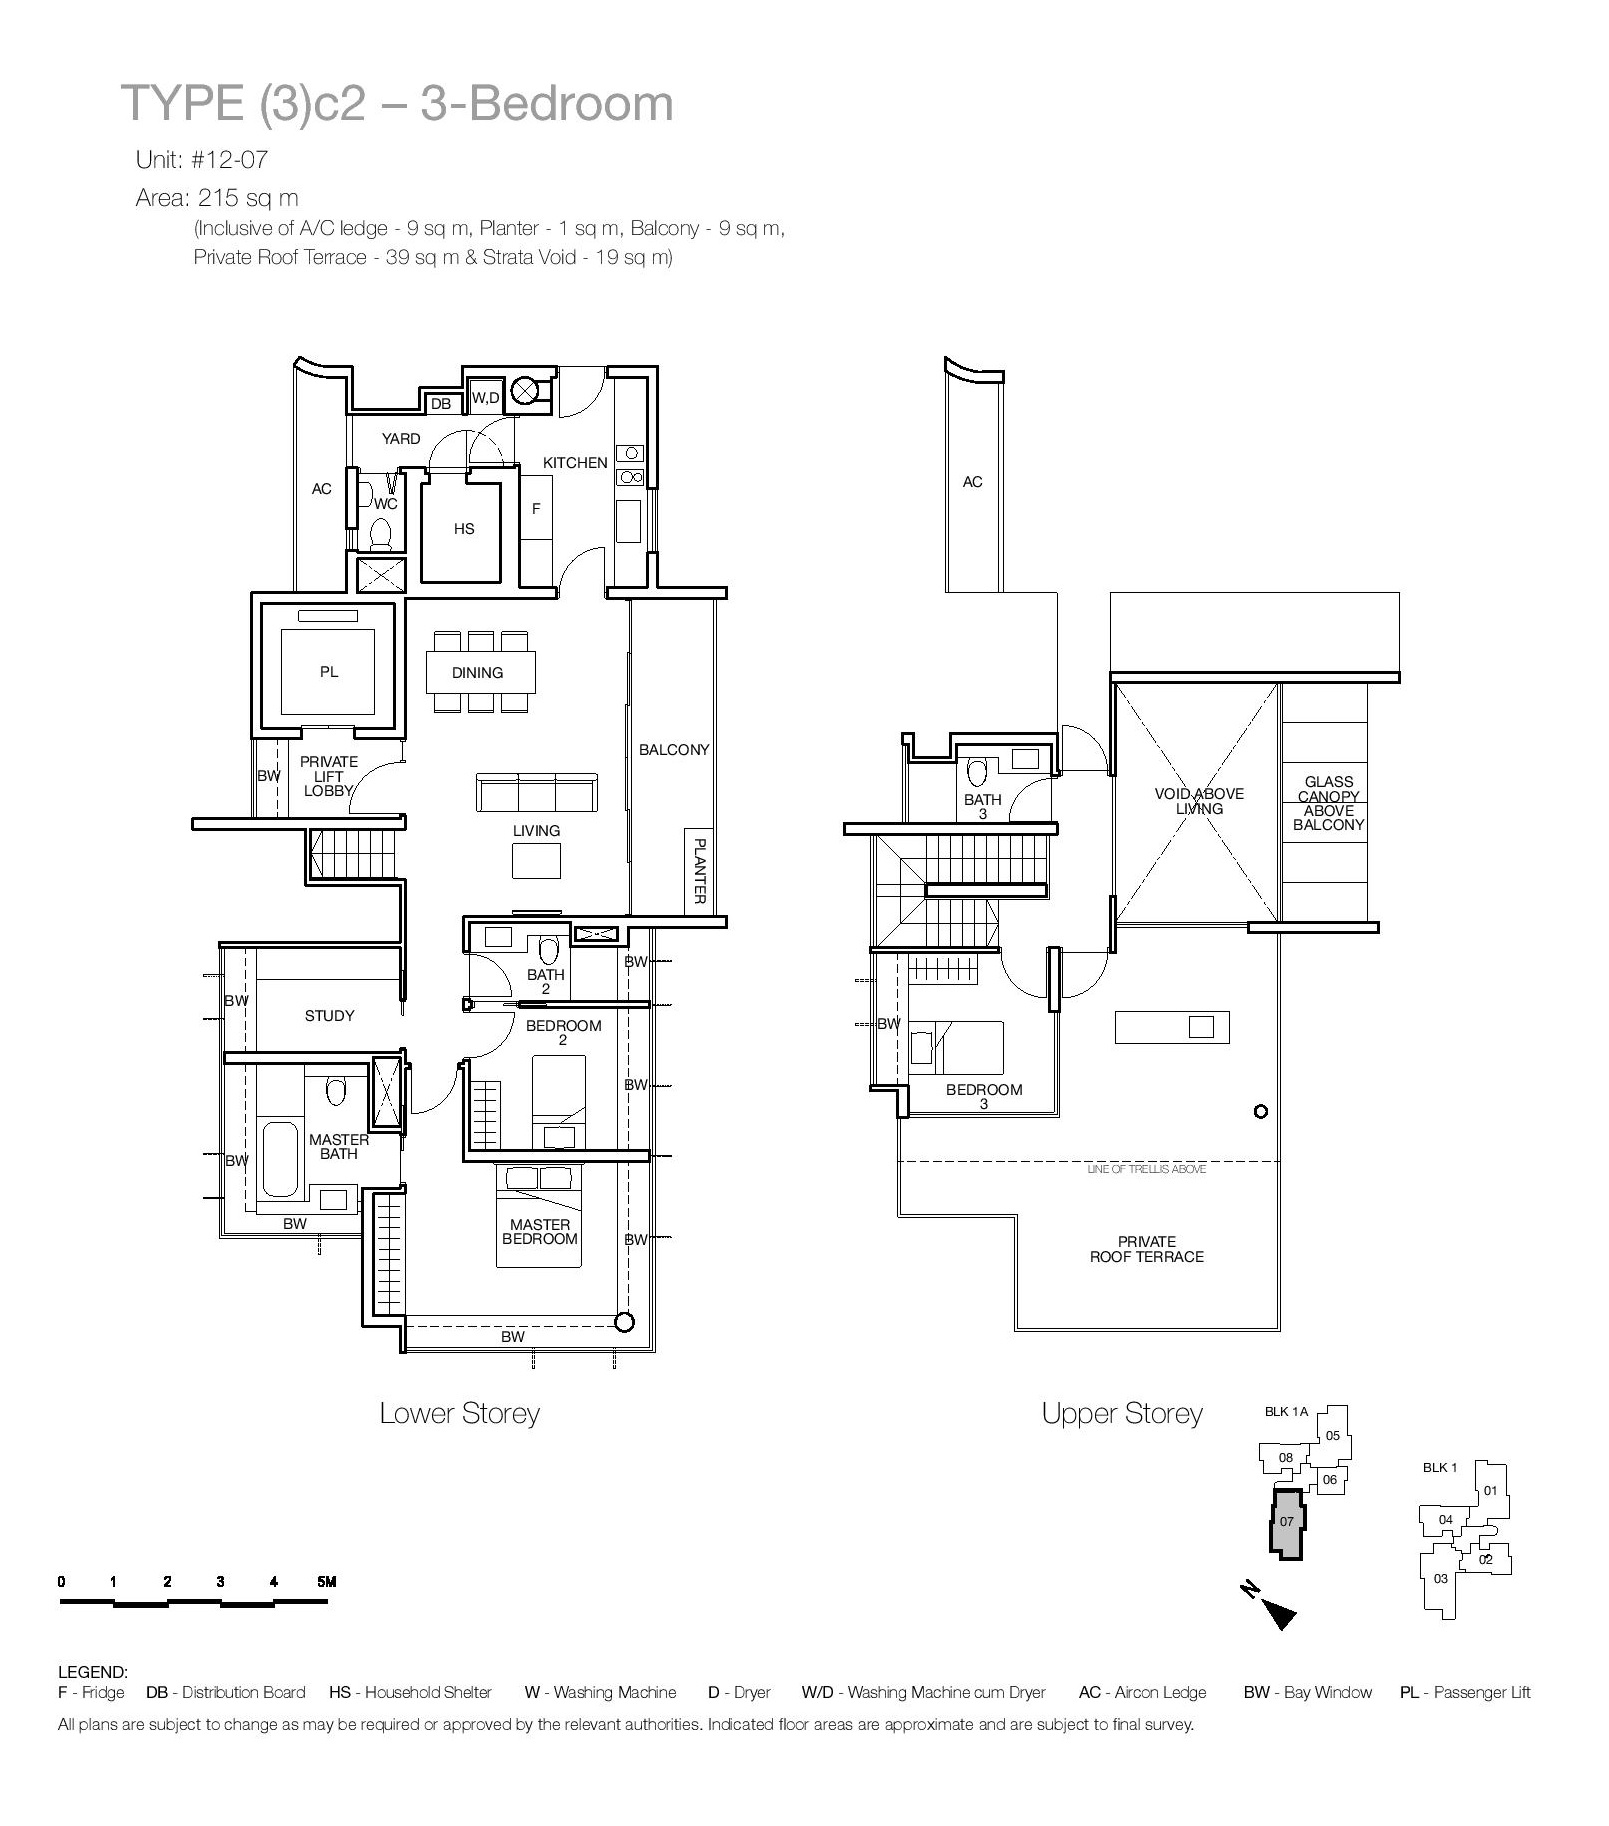 One Balmoral 3 Bedroom Floor Type (3)c2 Plans